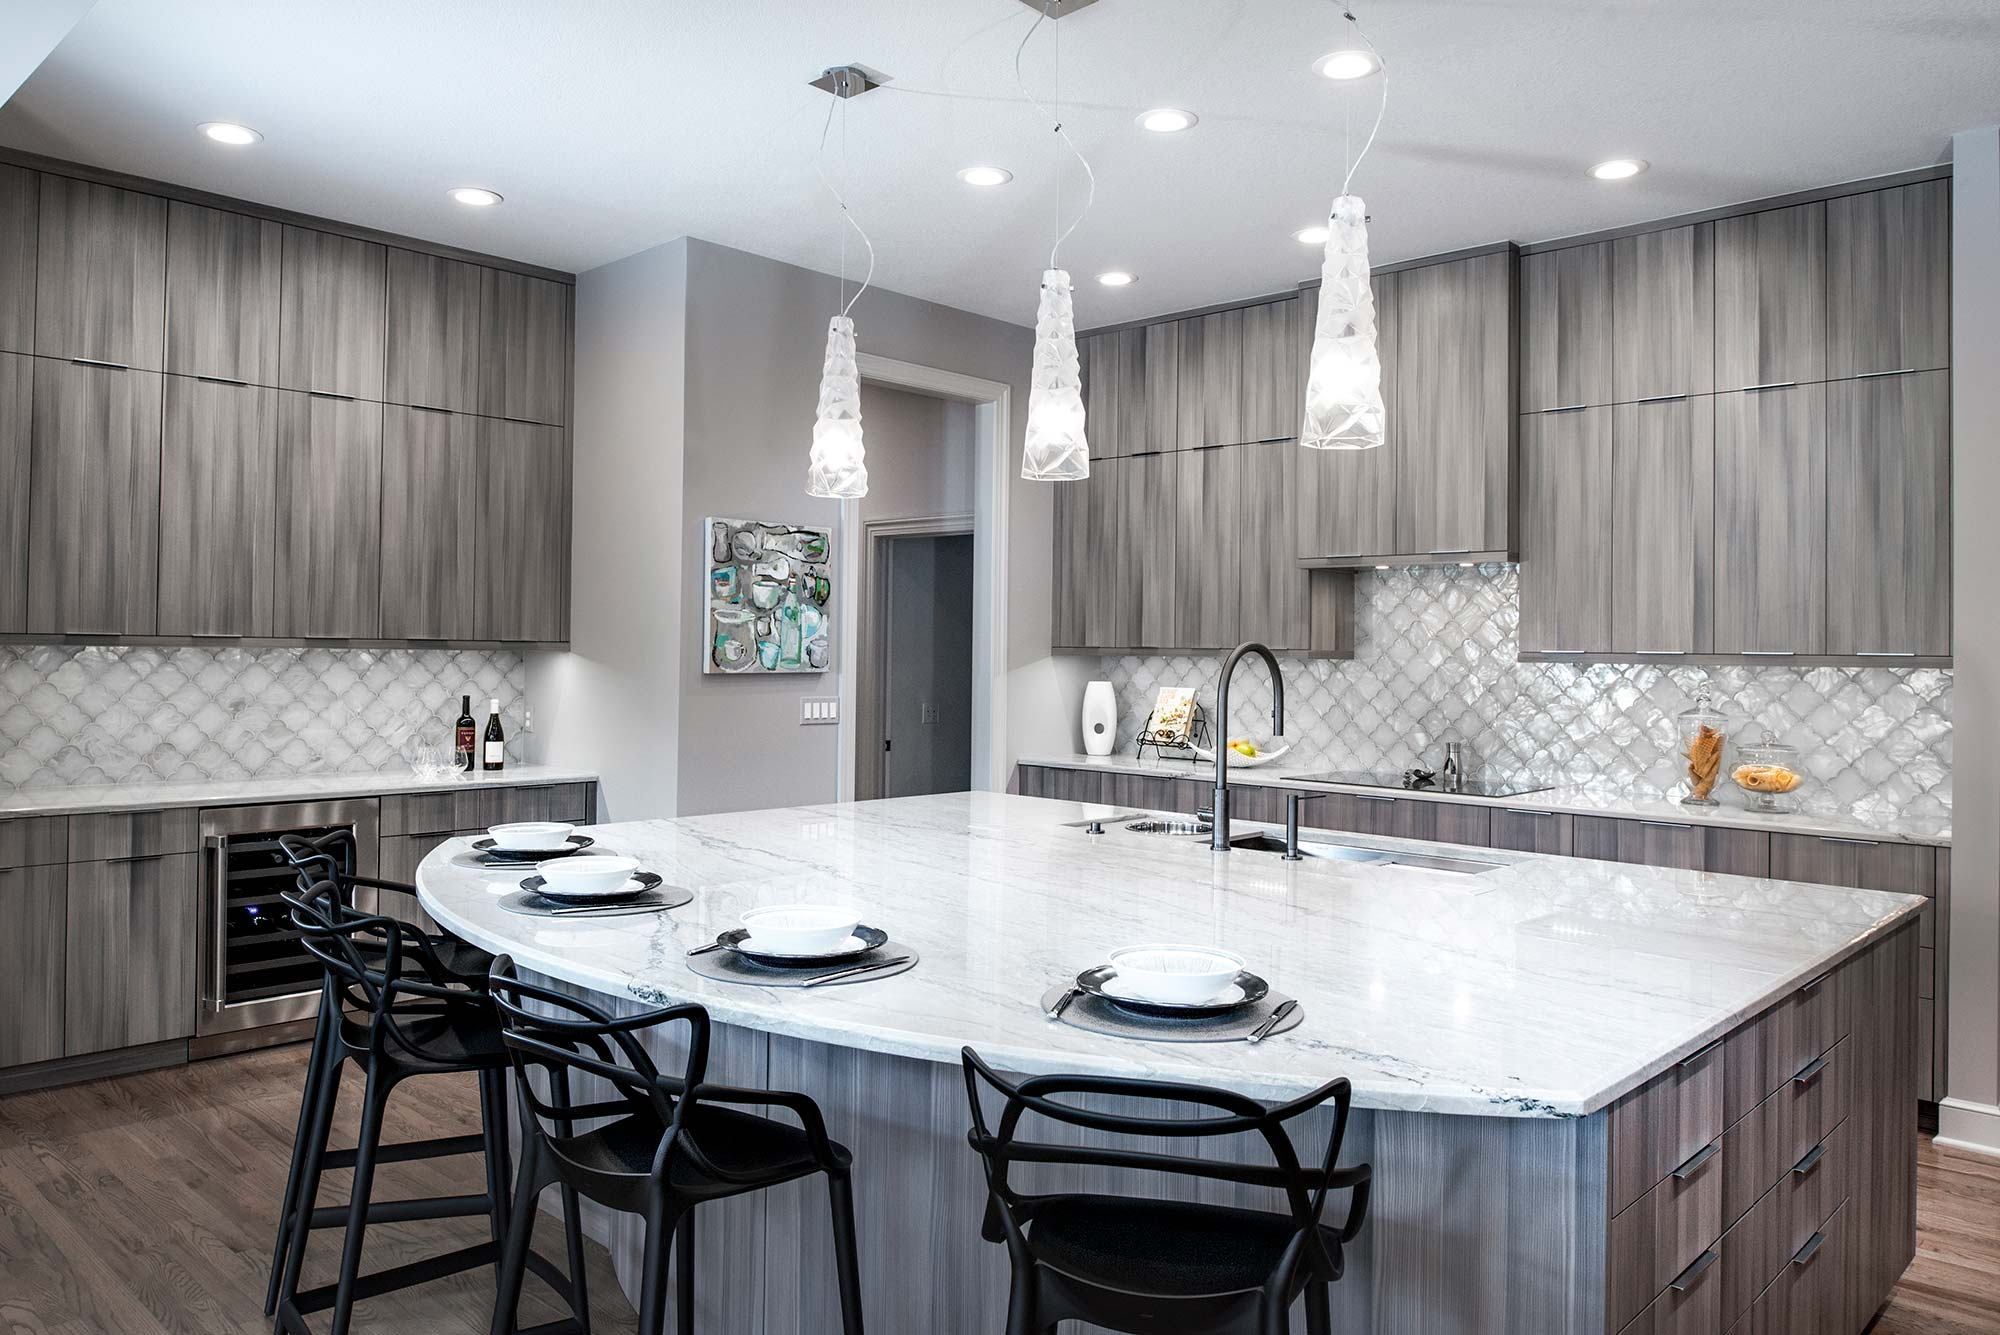 Culinary Elegance 4 warm transitional open kitchen with large island featuring Galley Workstation, beautiful Harmoni cabinets, wood floors and stainless appliances